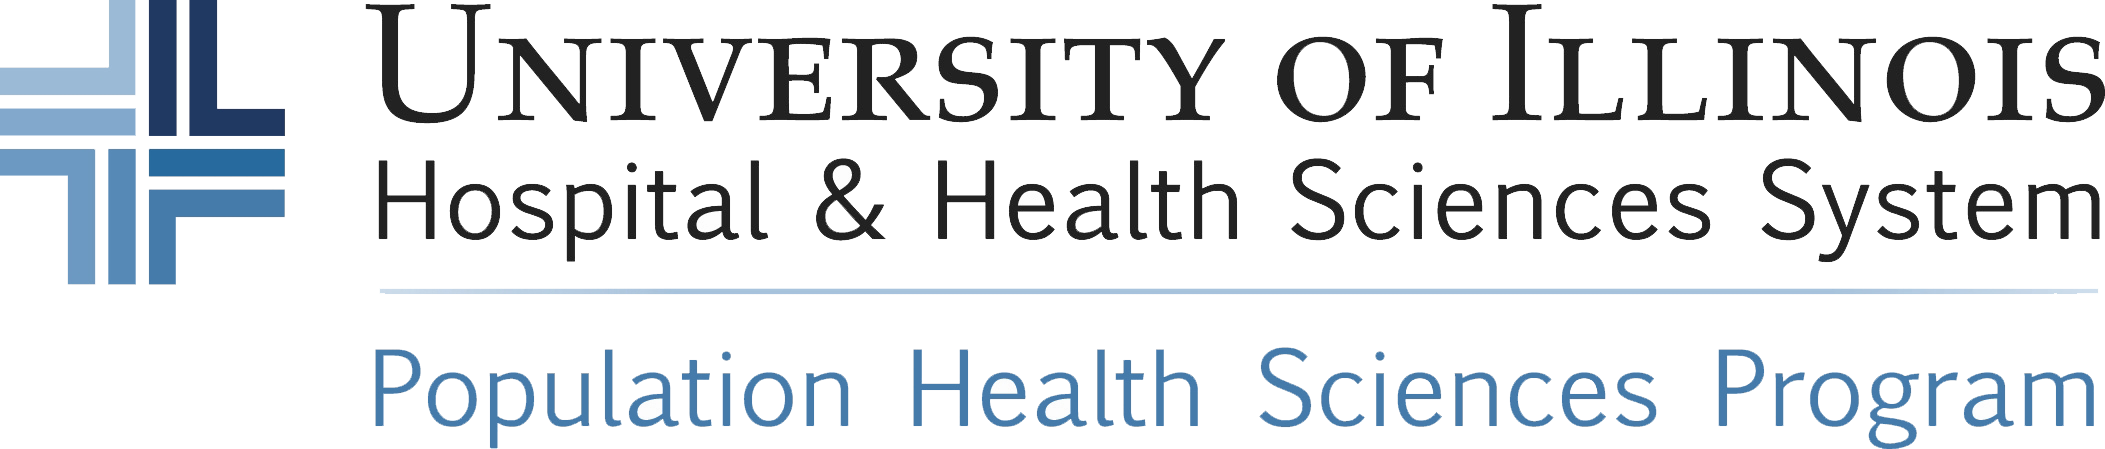 UIC Hospital and Health Sciences System: Population Health Sciences Program